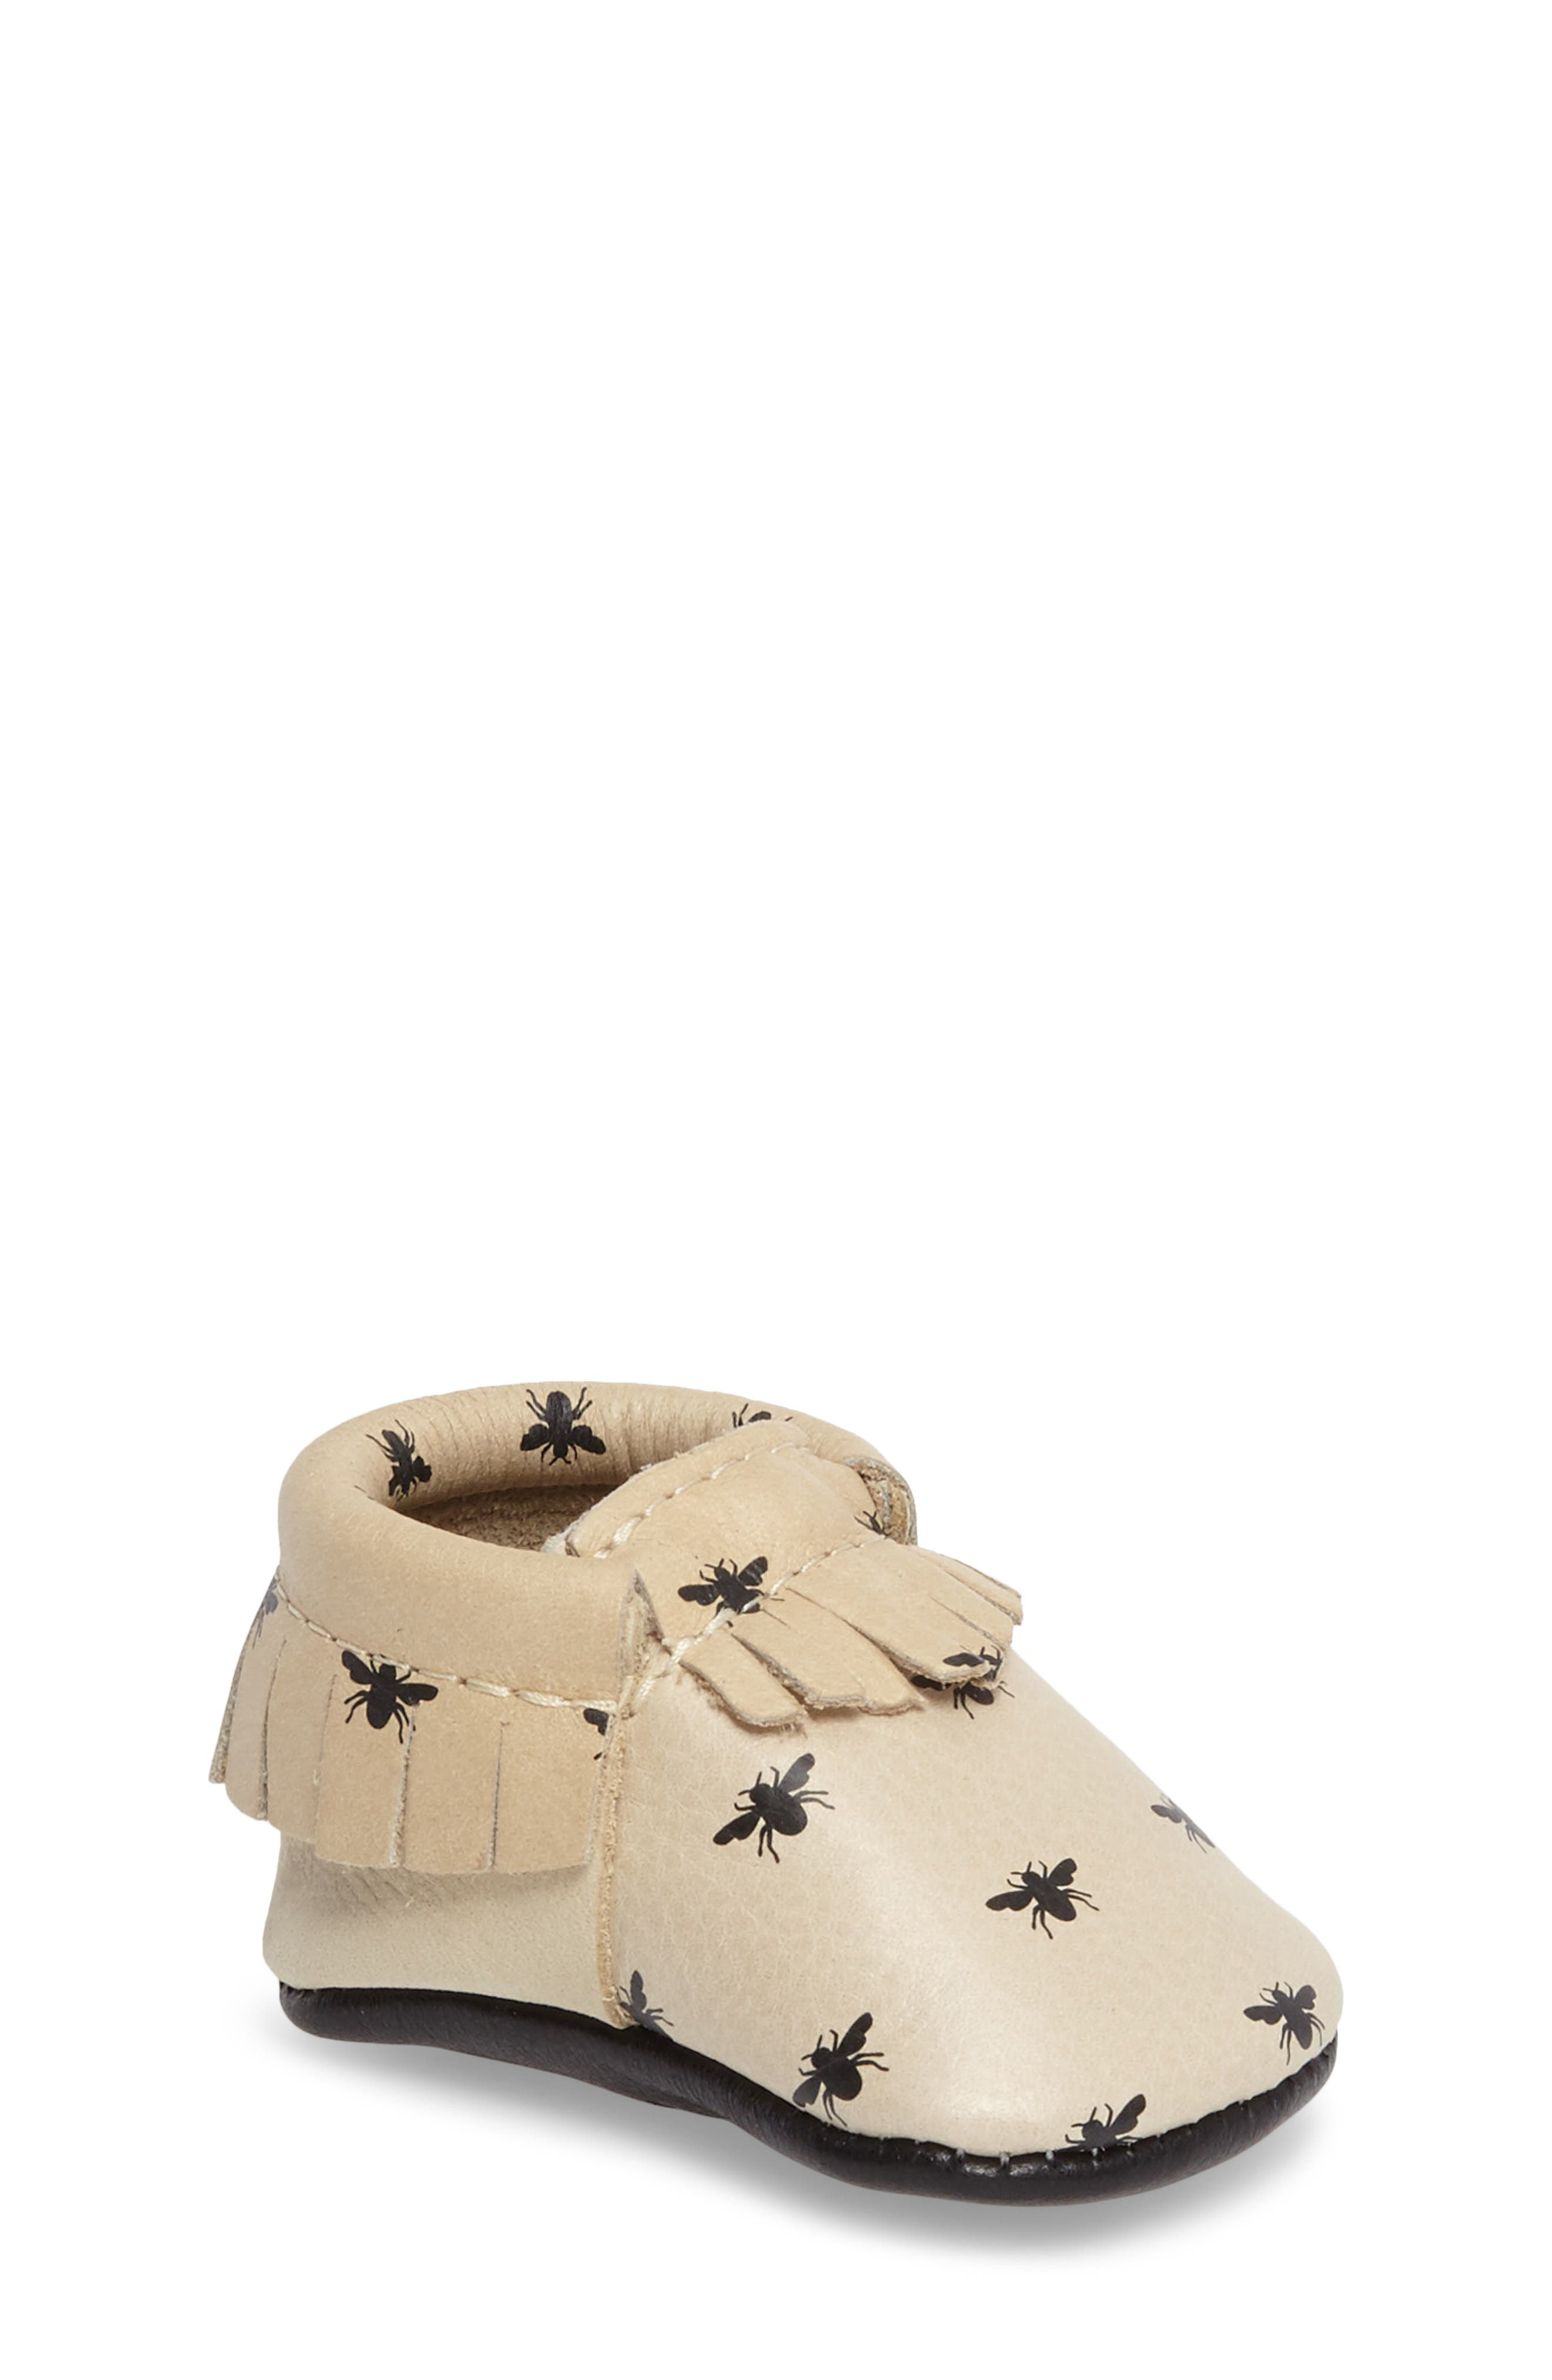 Honeybee Print Moccasin,                         Main,                         color, 250